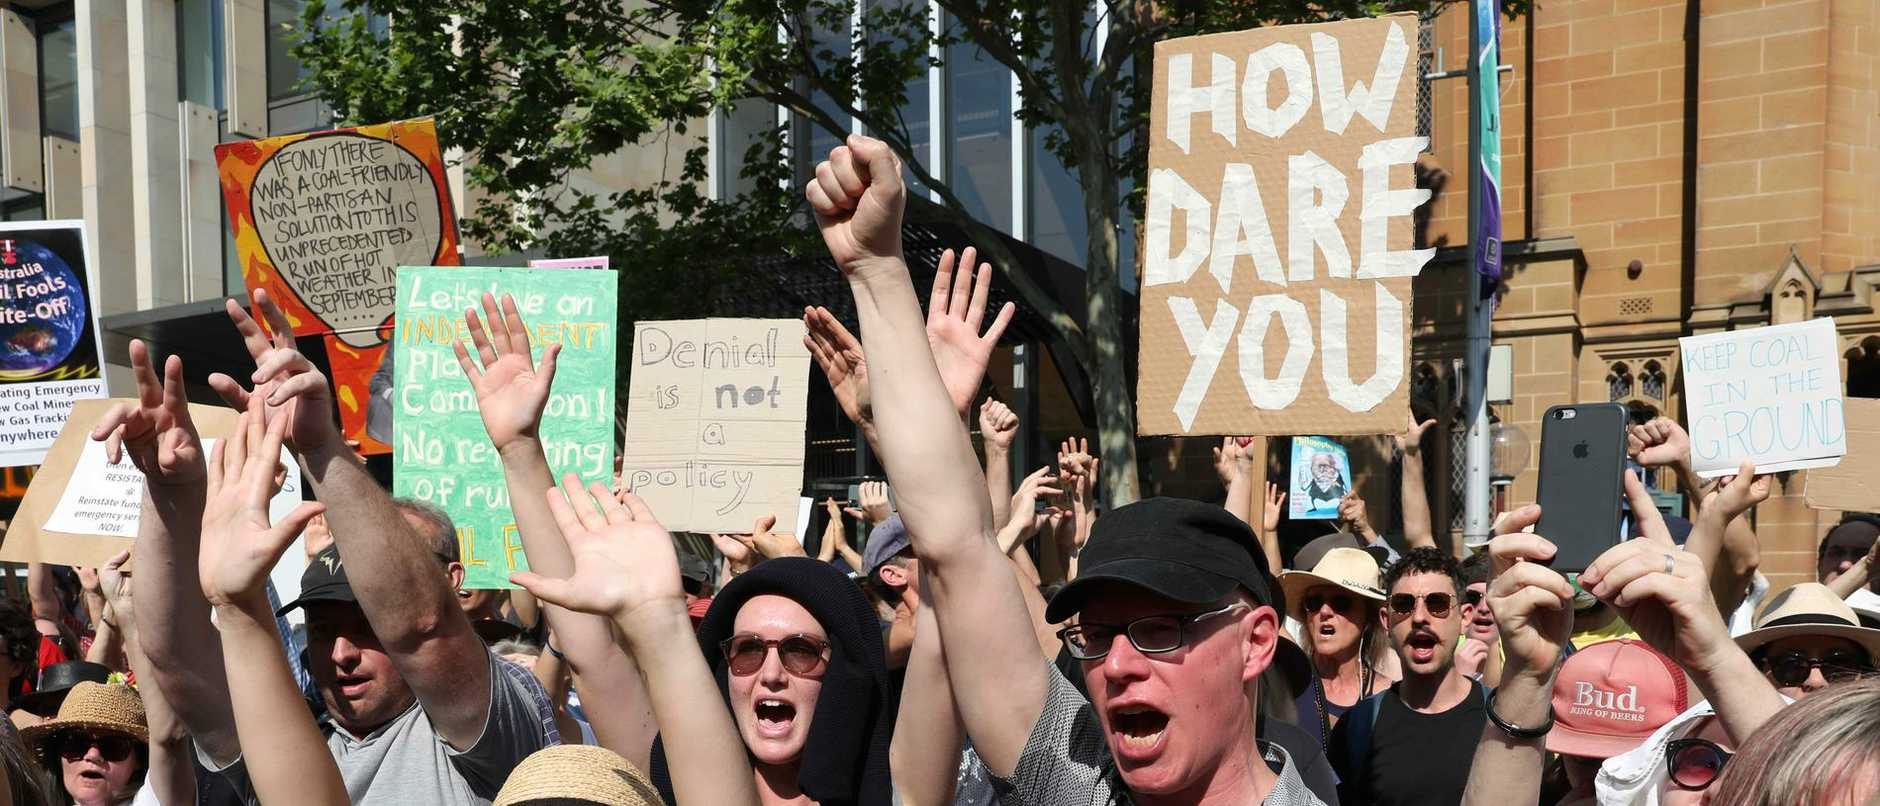 Mike O'Connor: Virtue signalling and the scramble to wokeness